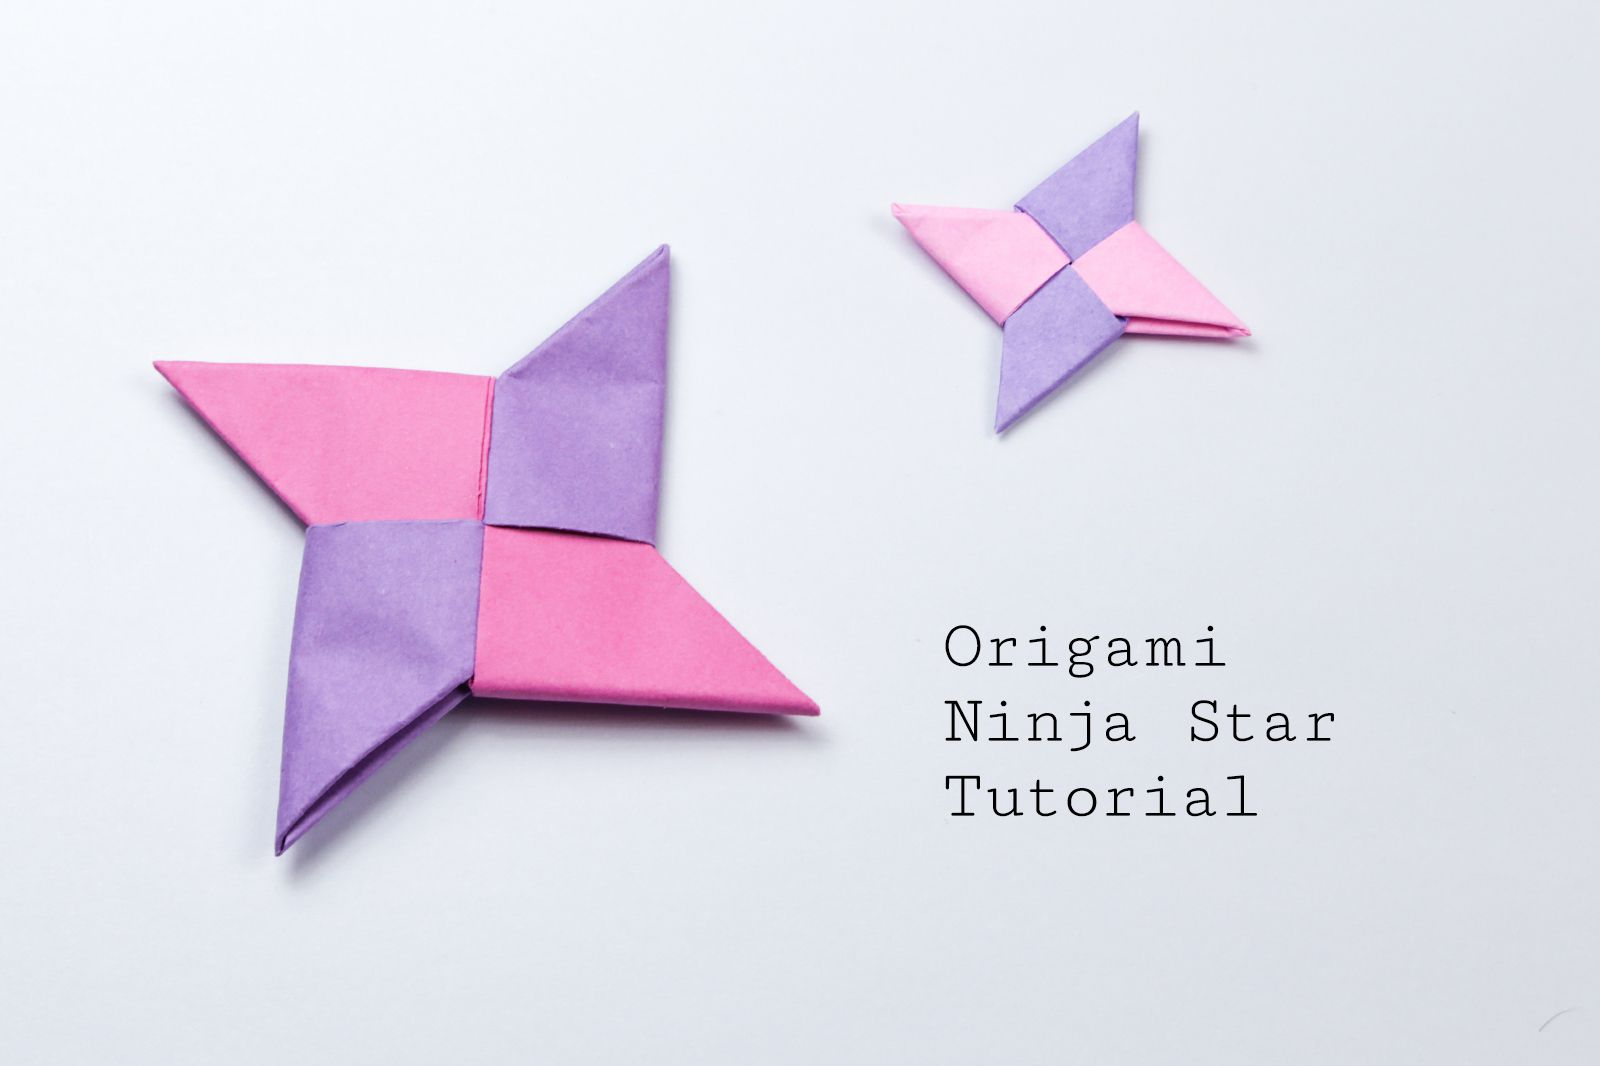 How to Make an Origami 16 Sided Ninja Star - Snapguide | 1066x1600